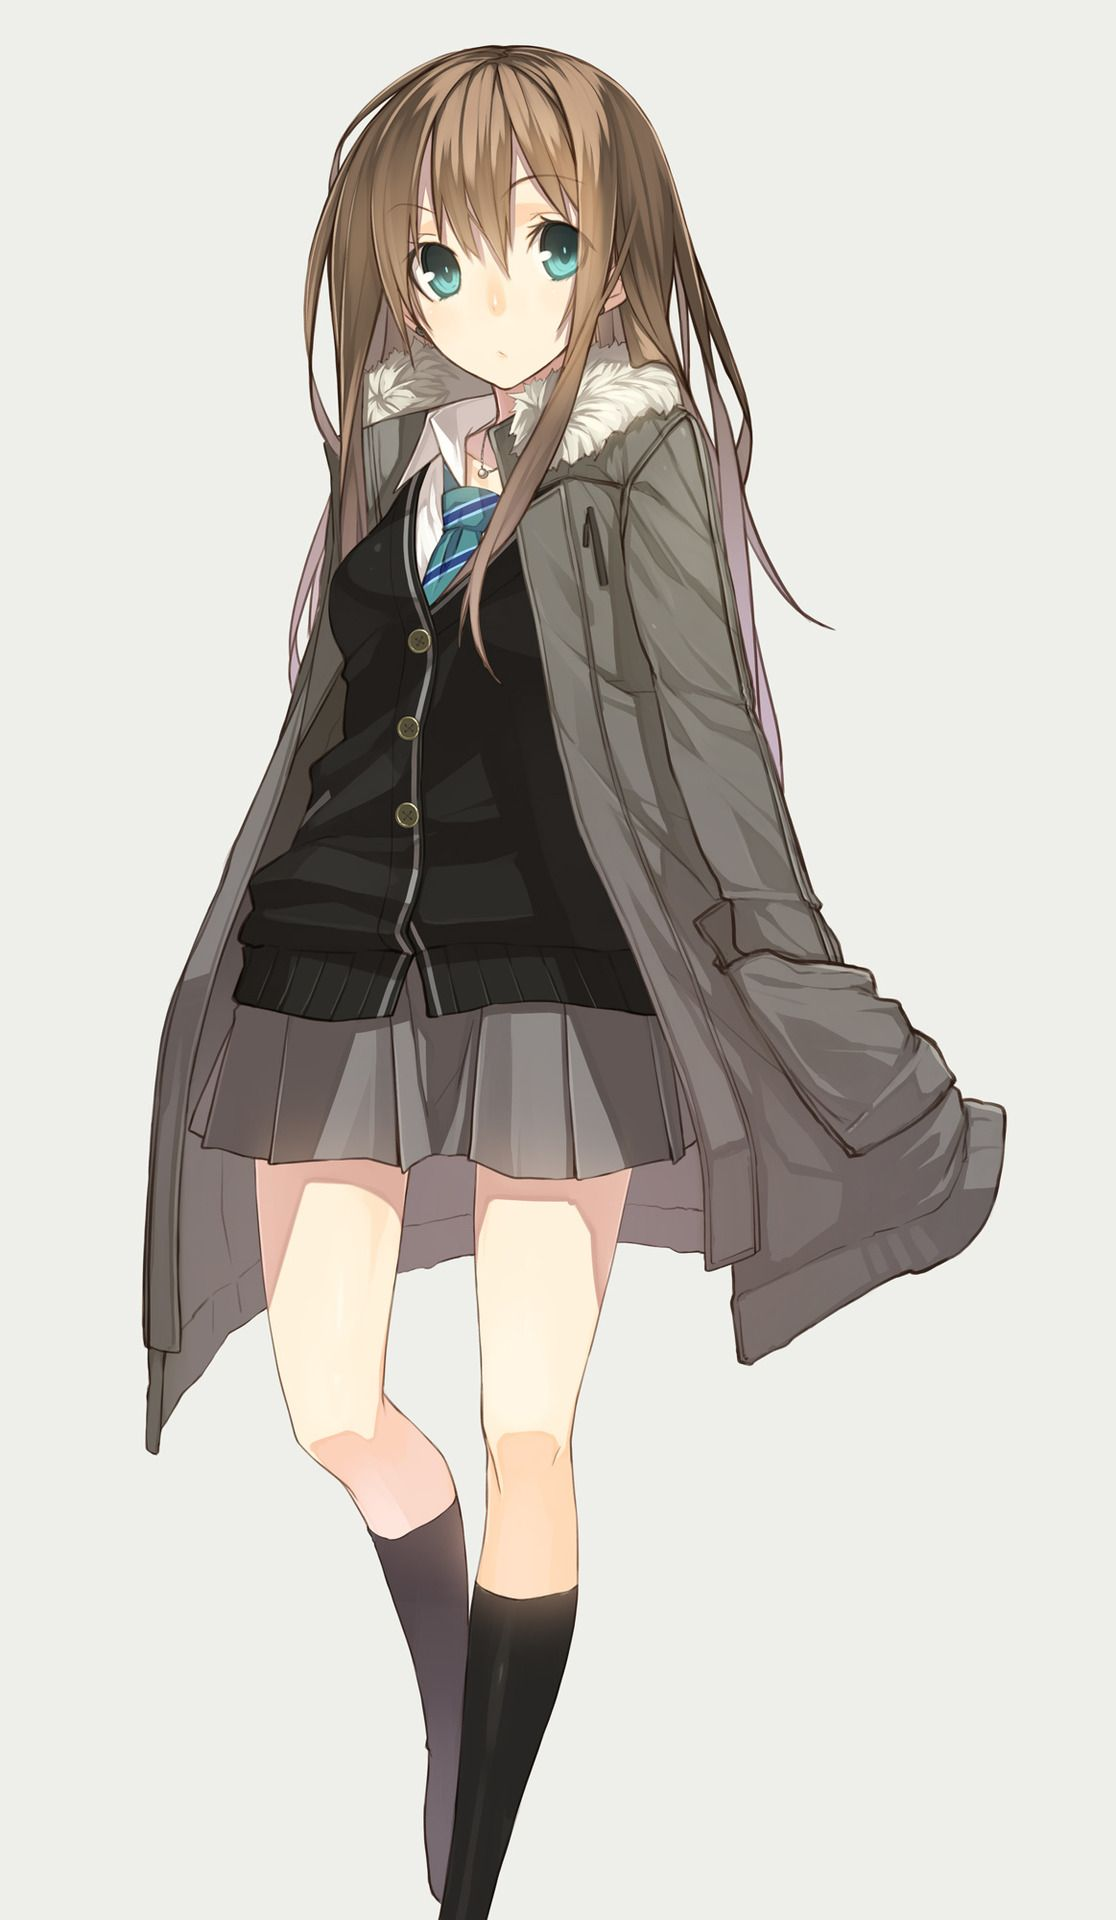 Art Anime Girl In Oversized Hoodie